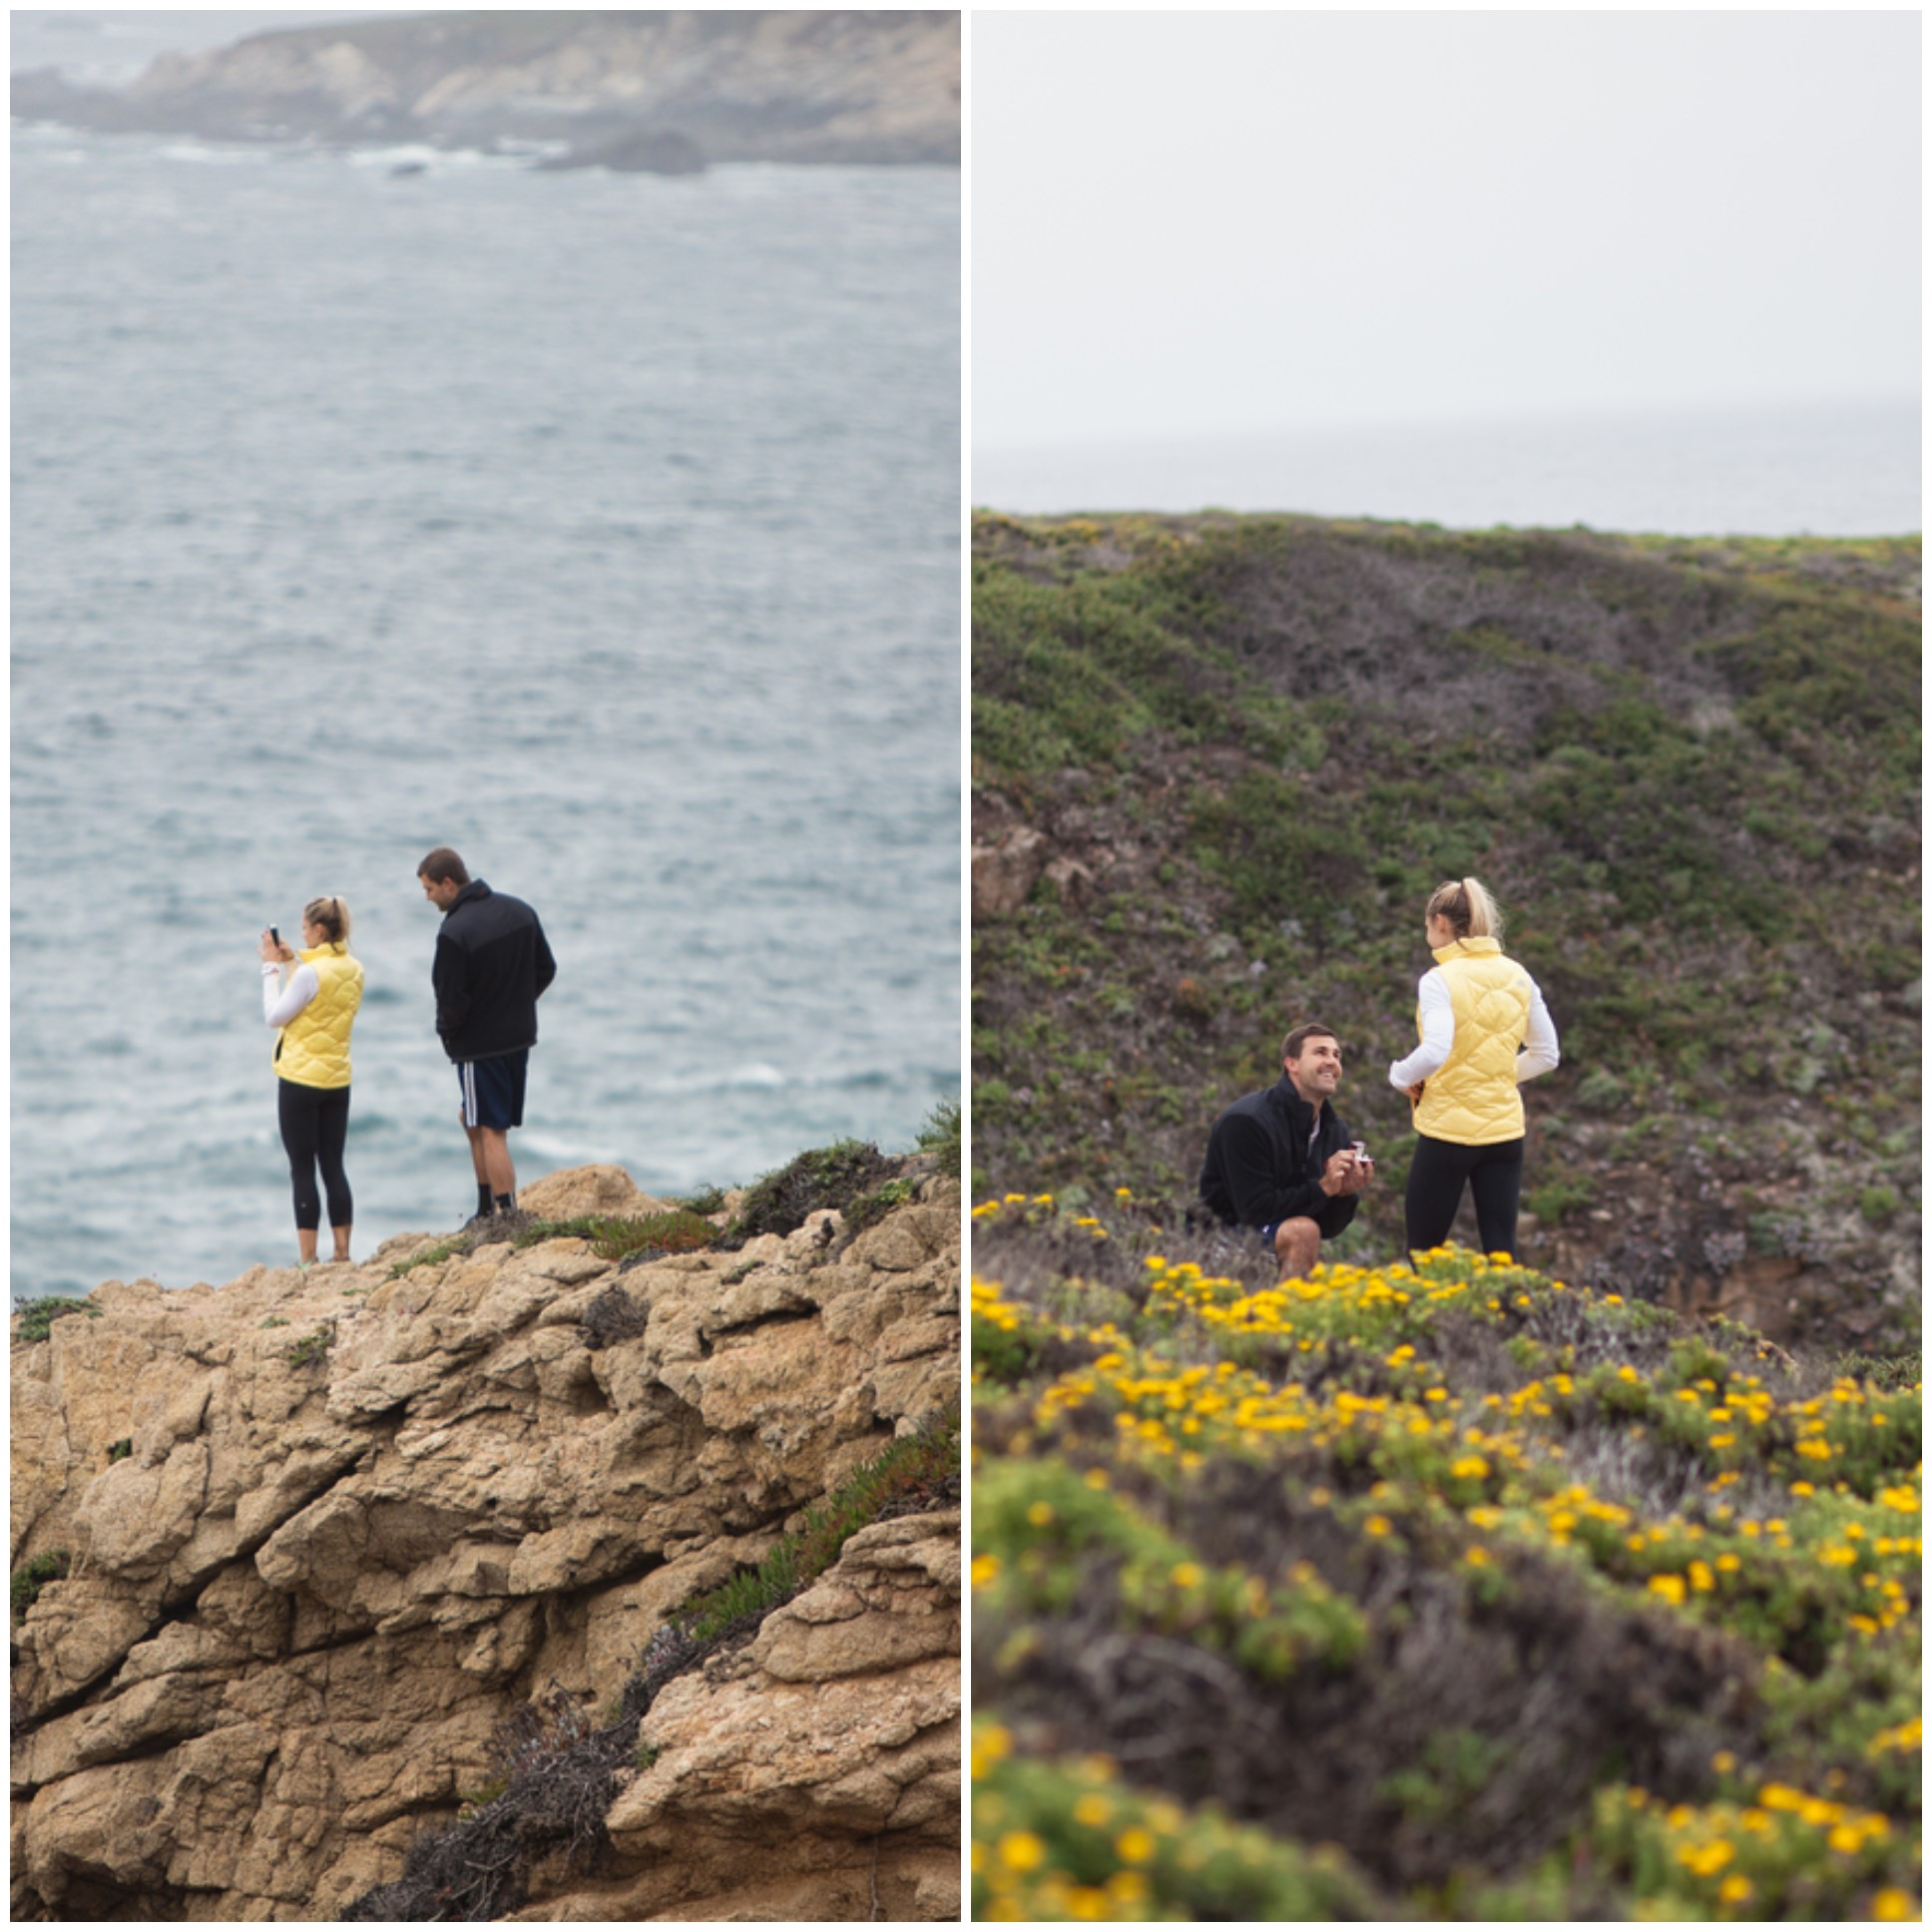 Hiking Proposal at Big Sur